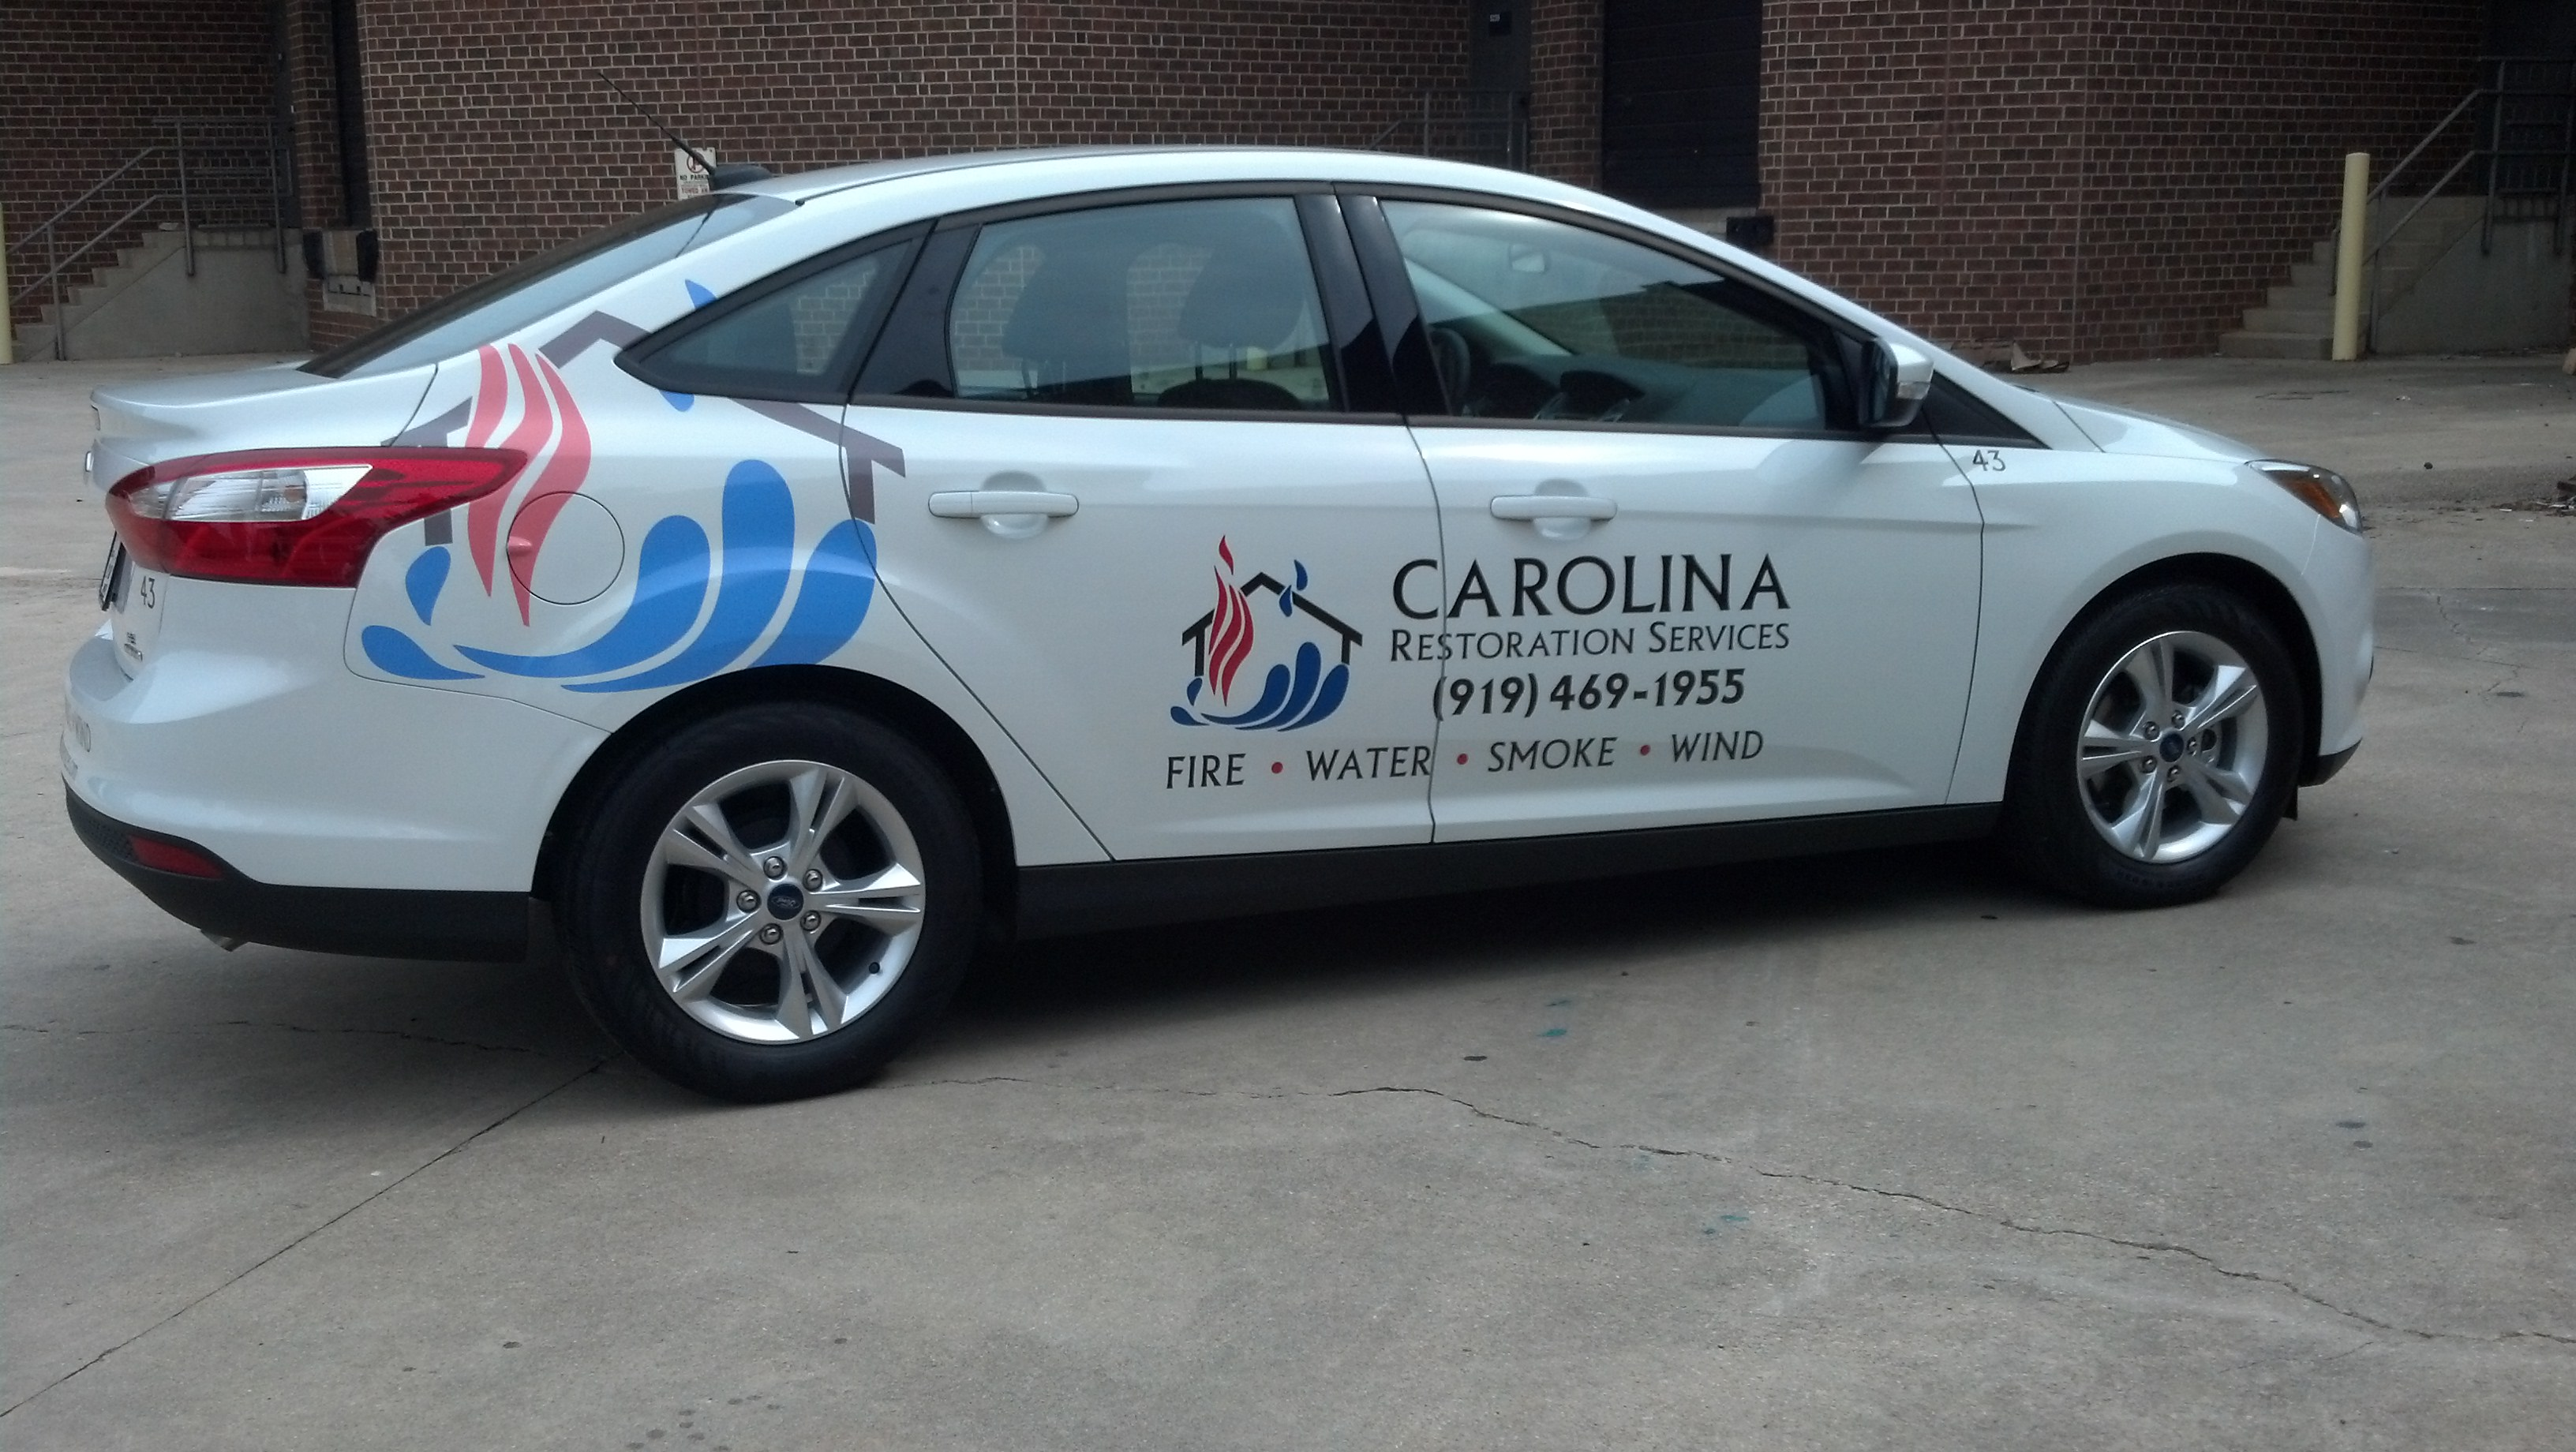 Capital Ford Raleigh >> Ford Fusion & Focus - Carolina Restoration Services | Signergy